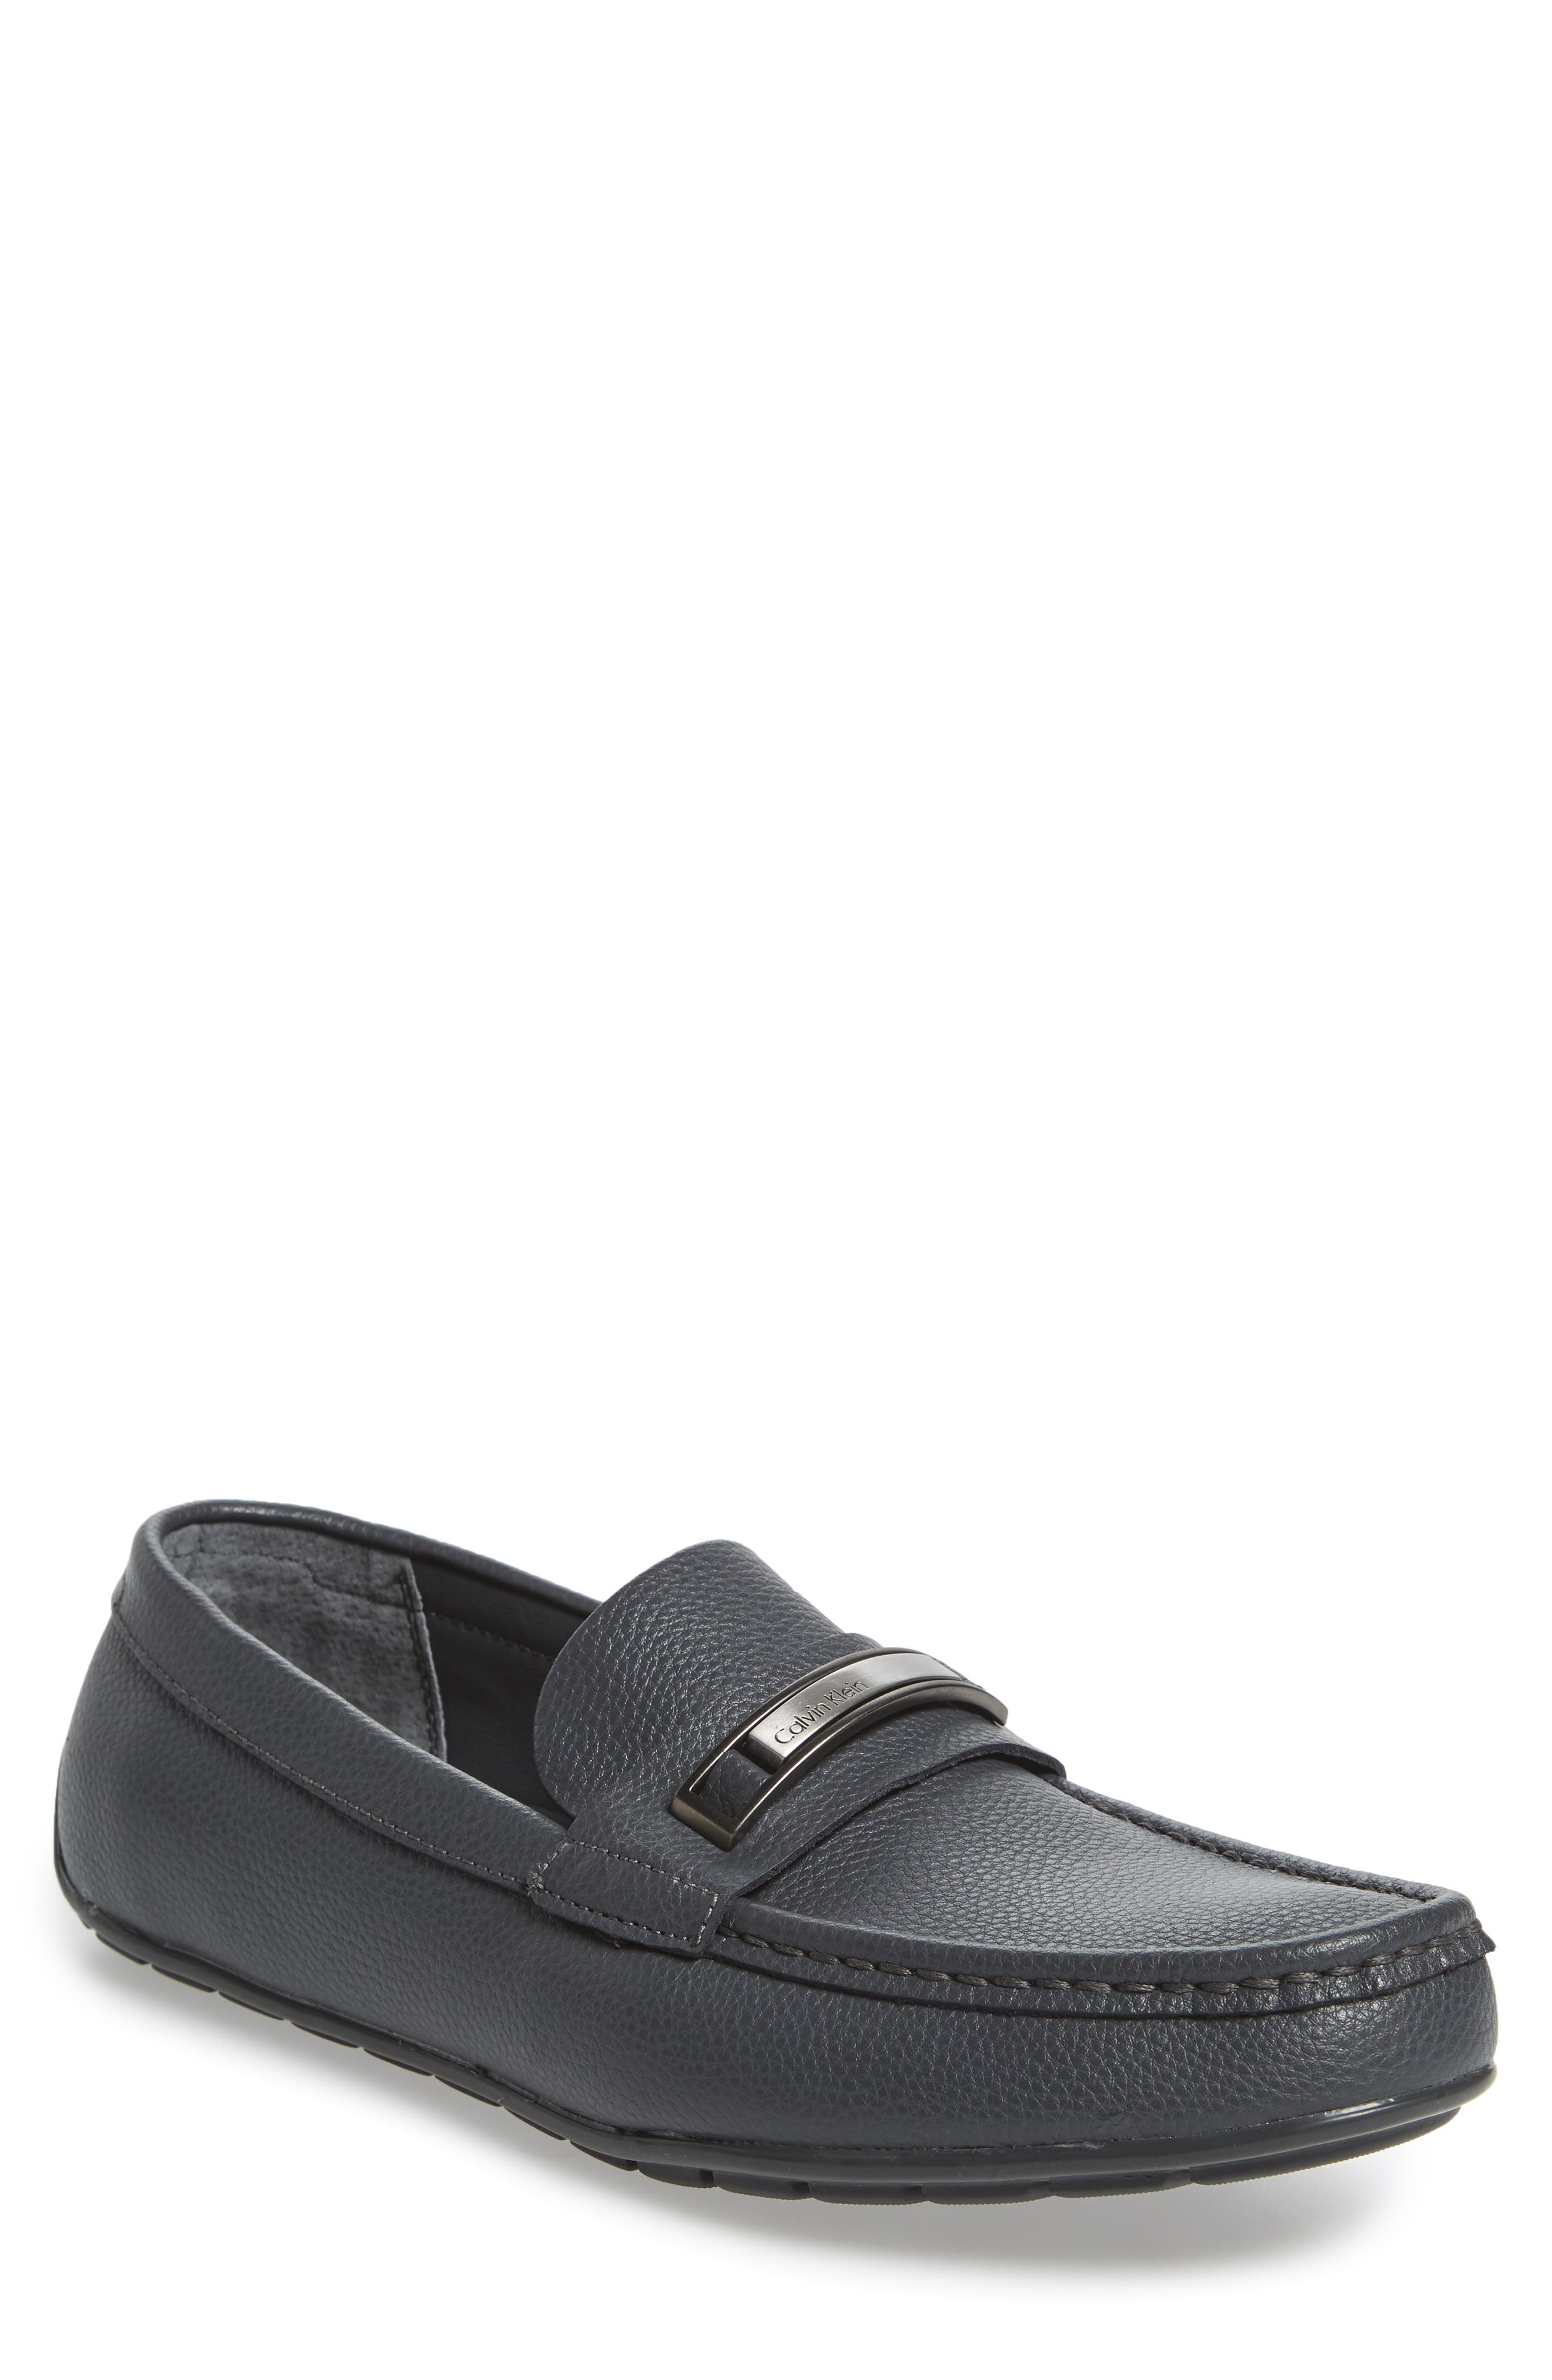 Irving Driving Loafer,                             Main thumbnail 2, color,